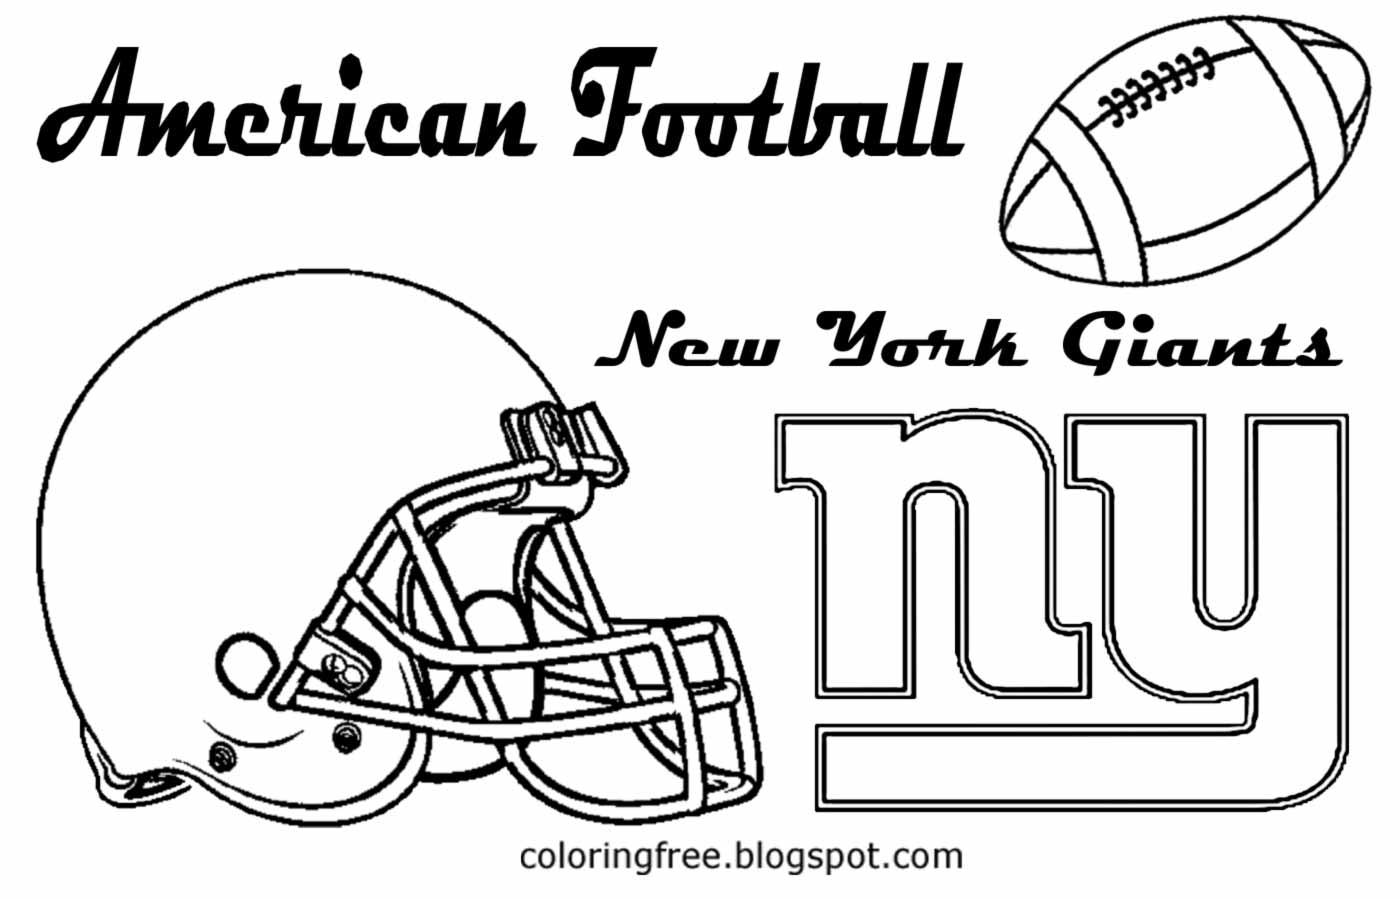 Free Coloring Pages Printable Pictures To Color Kids Drawing Ideas Ny Giants Coloring Pages